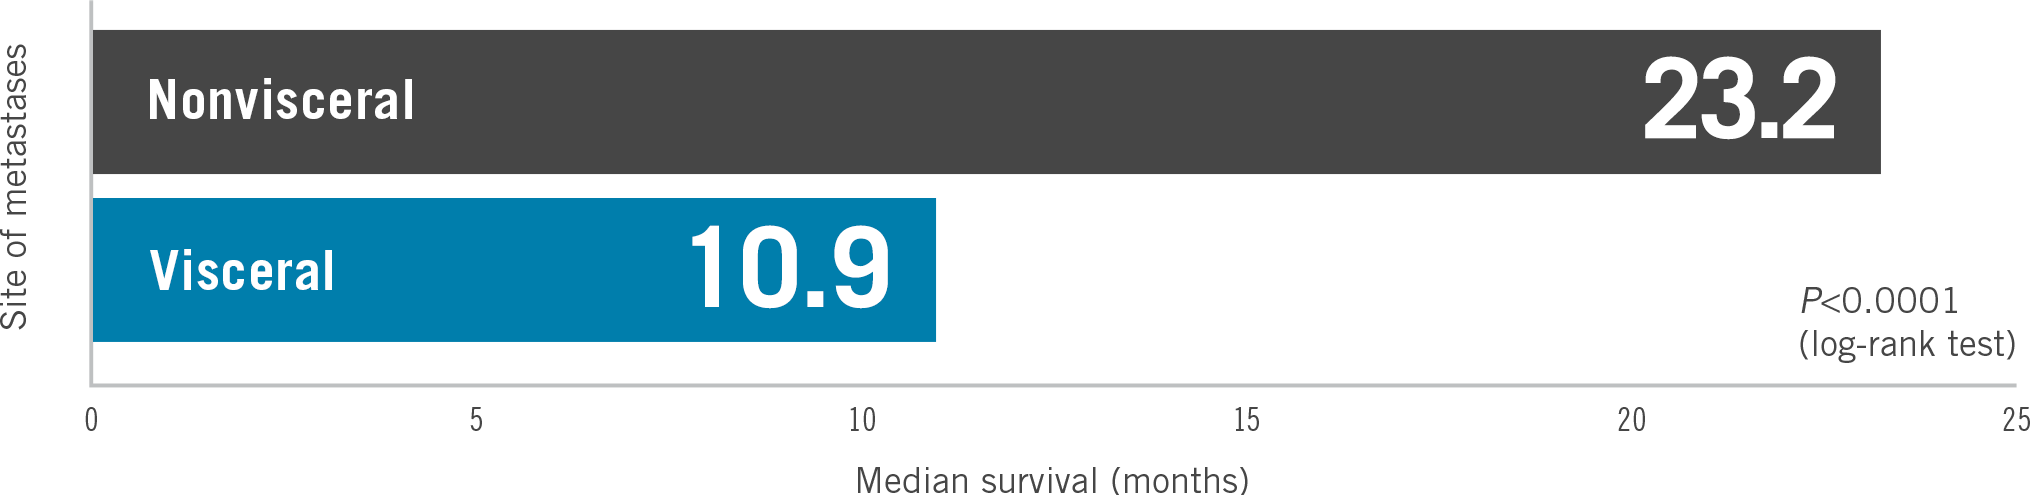 Nonvisceral (23.2 months) vs visceral (10.9 months) metastatic breast cancer (MBC) median survival comparison from a retrospective analysis - chart